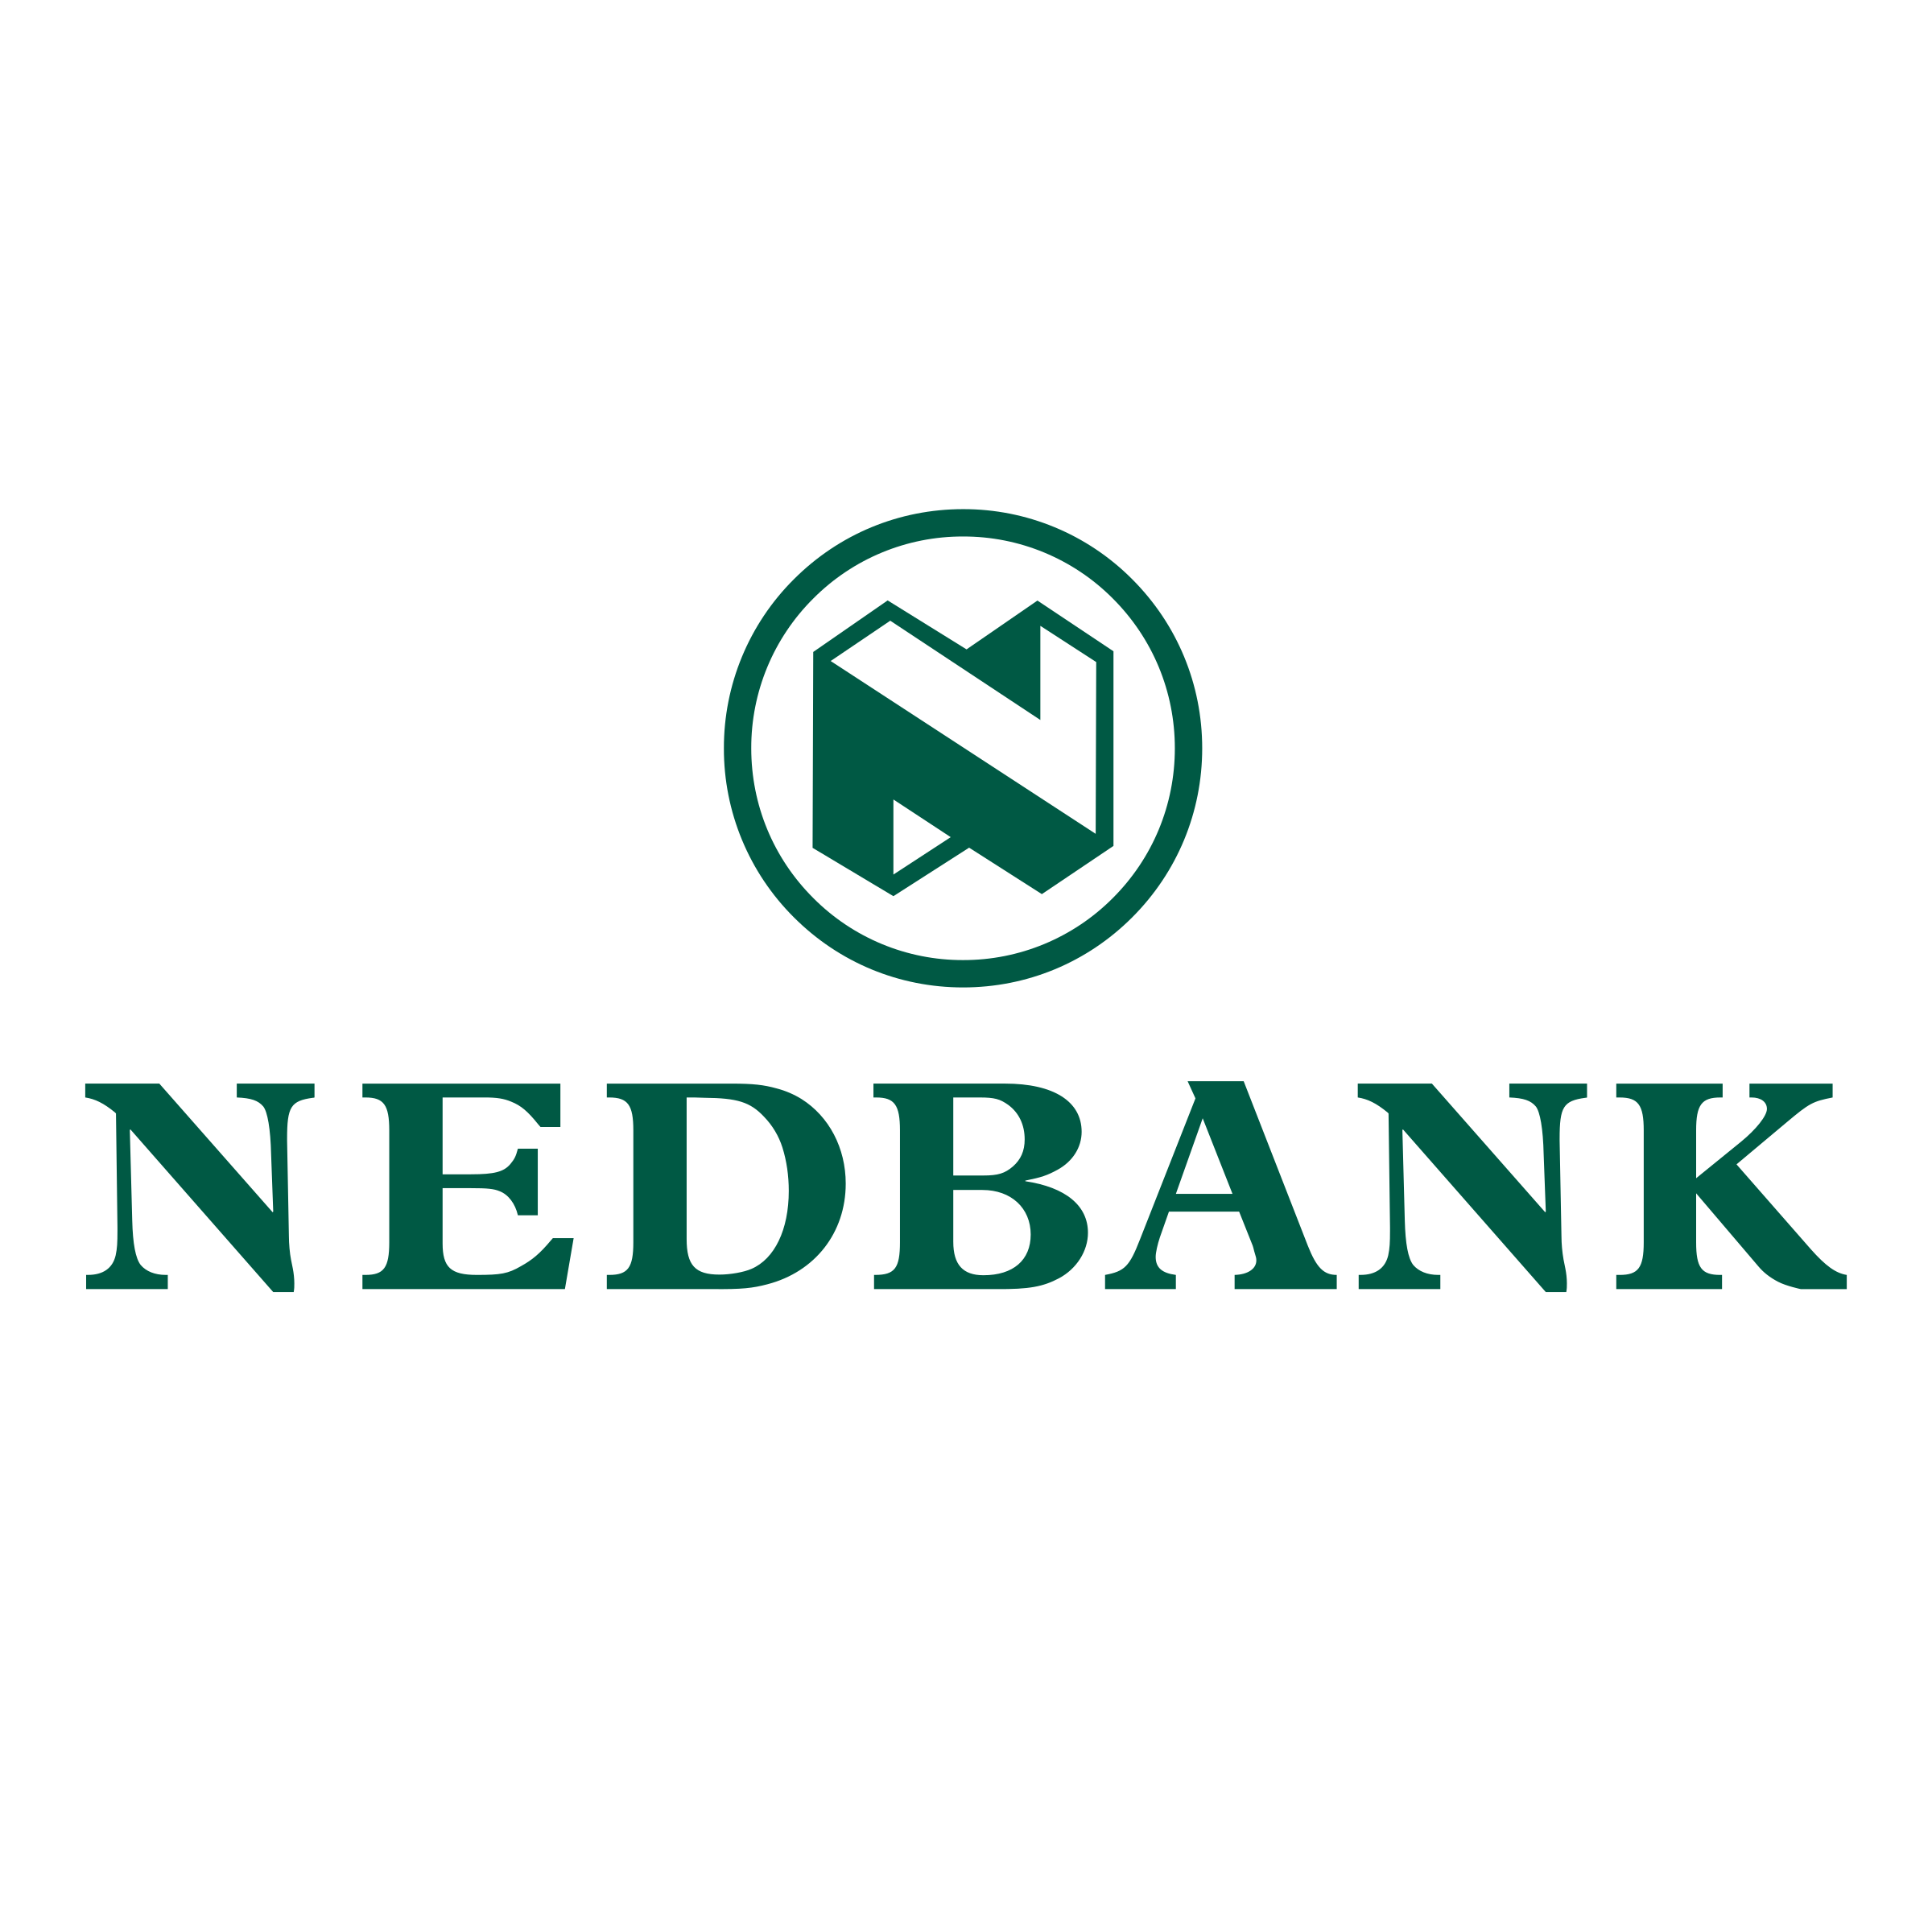 Nedbank Logo PNG Transparent & SVG Vector.